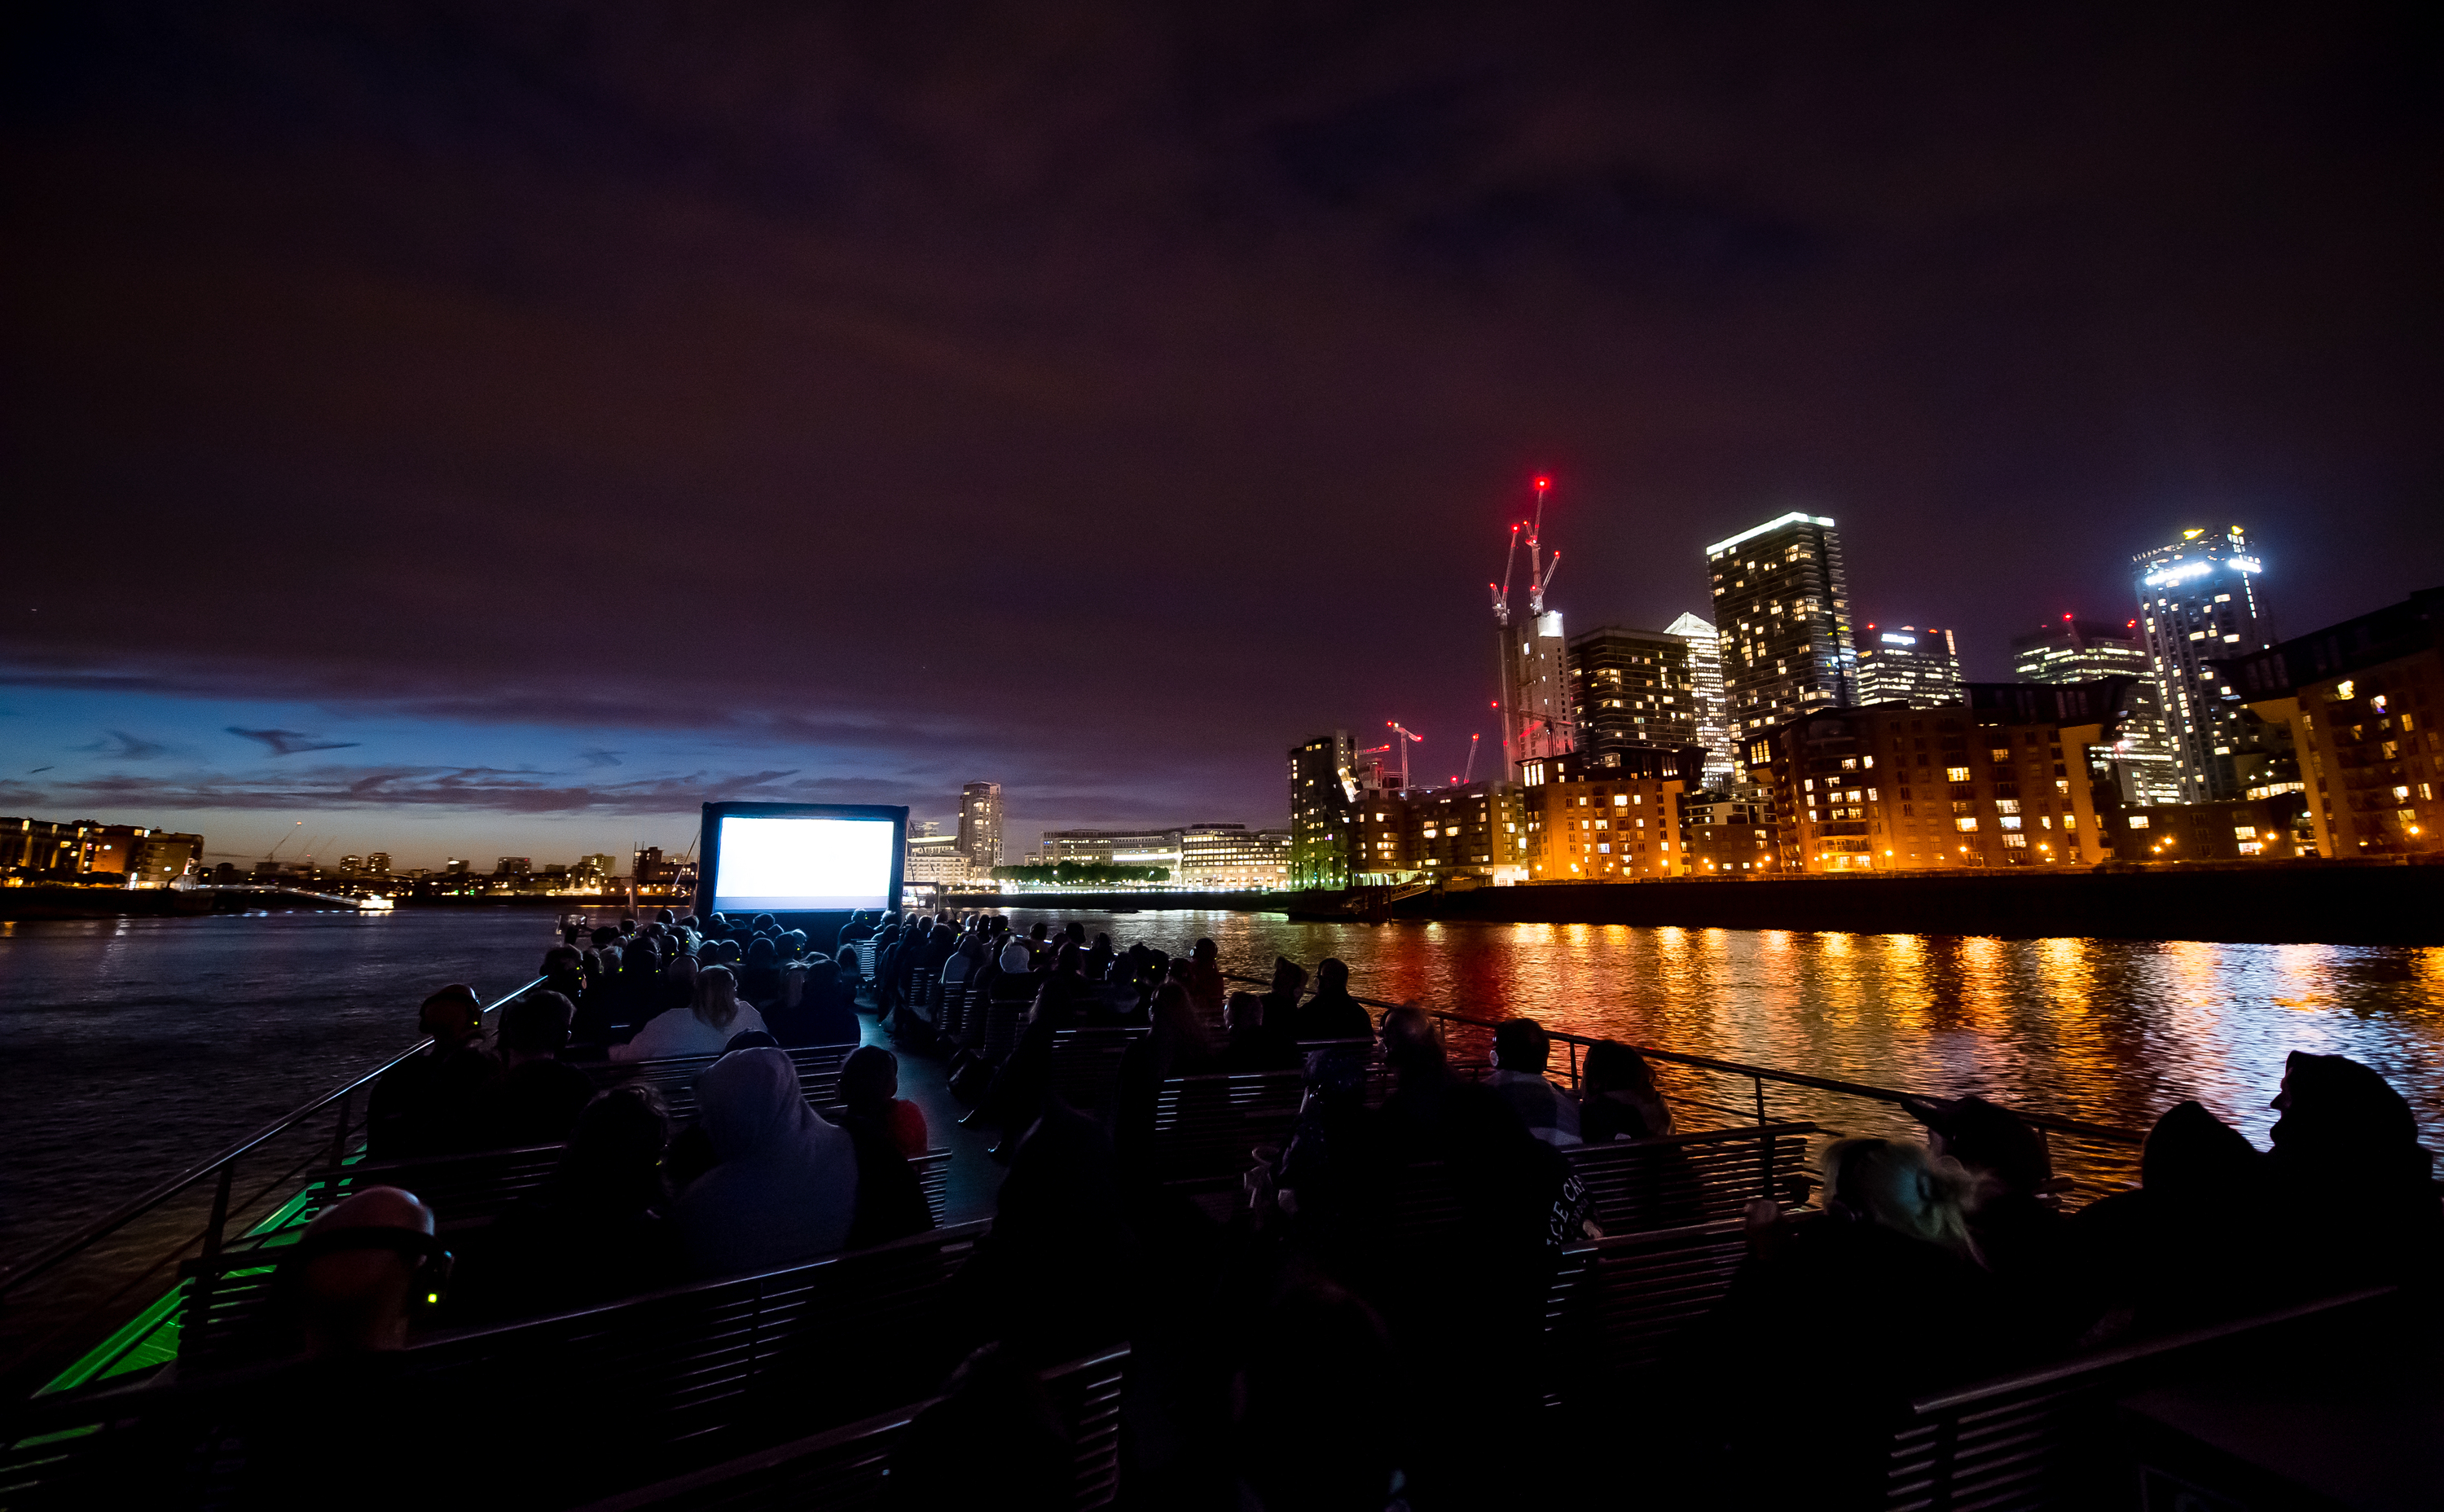 Outside now! This week's Movies on the River films include 'Pretty Woman' and 'Romeo + Juliet'